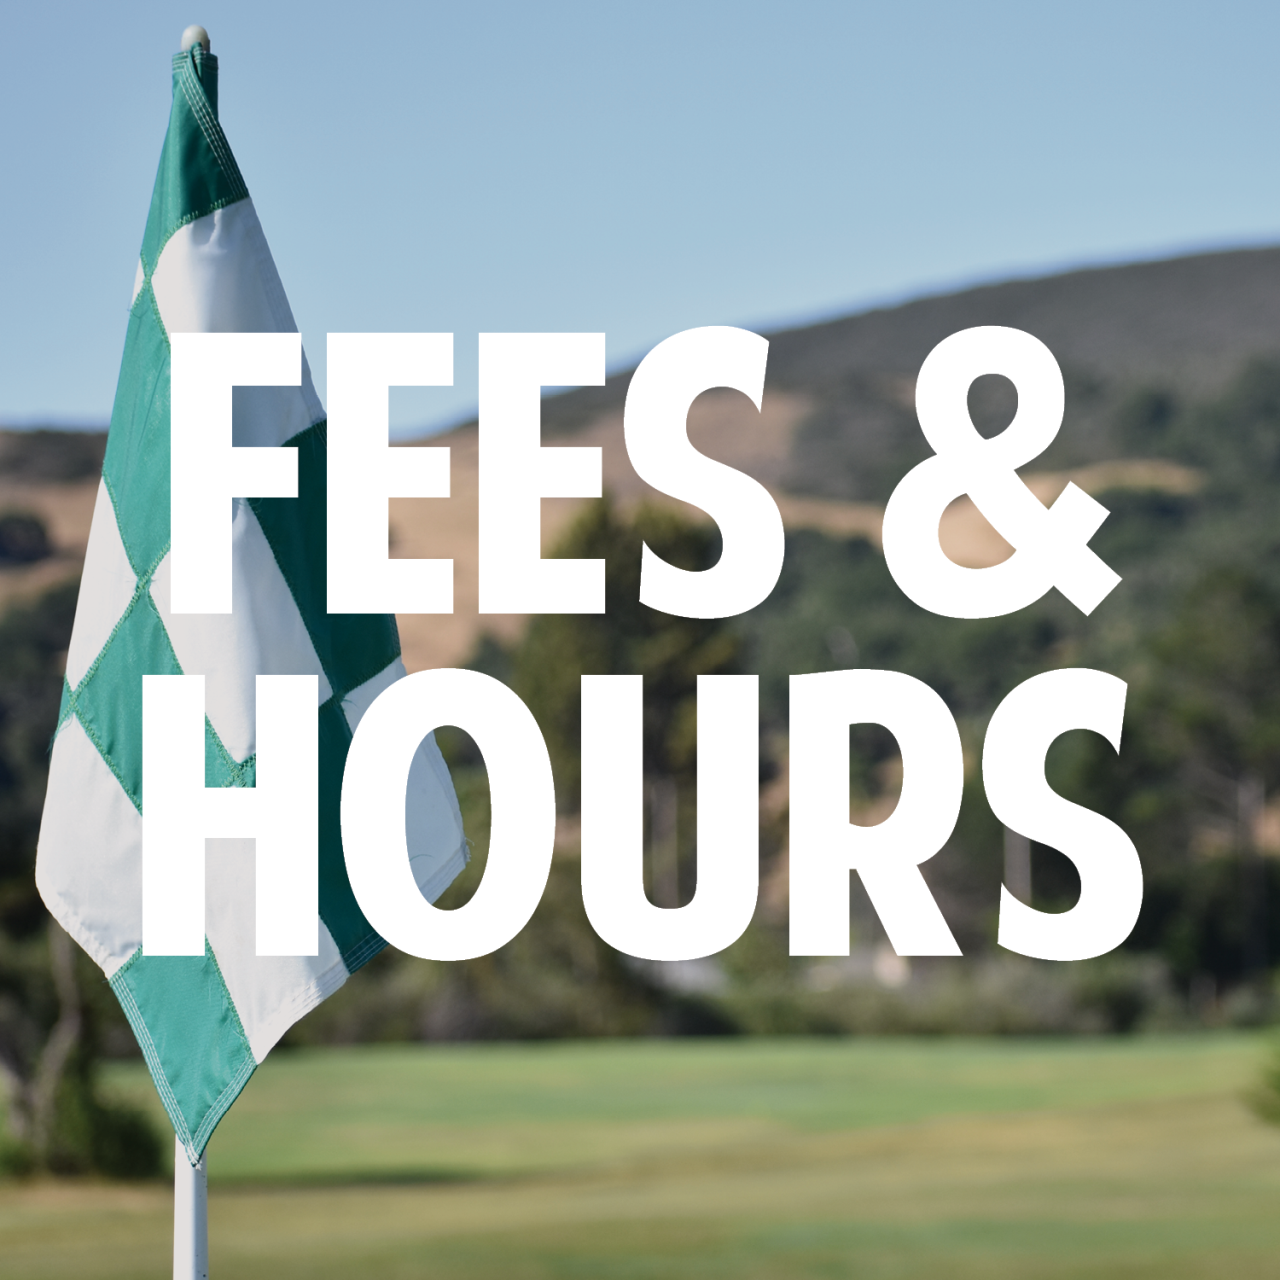 fees_hours